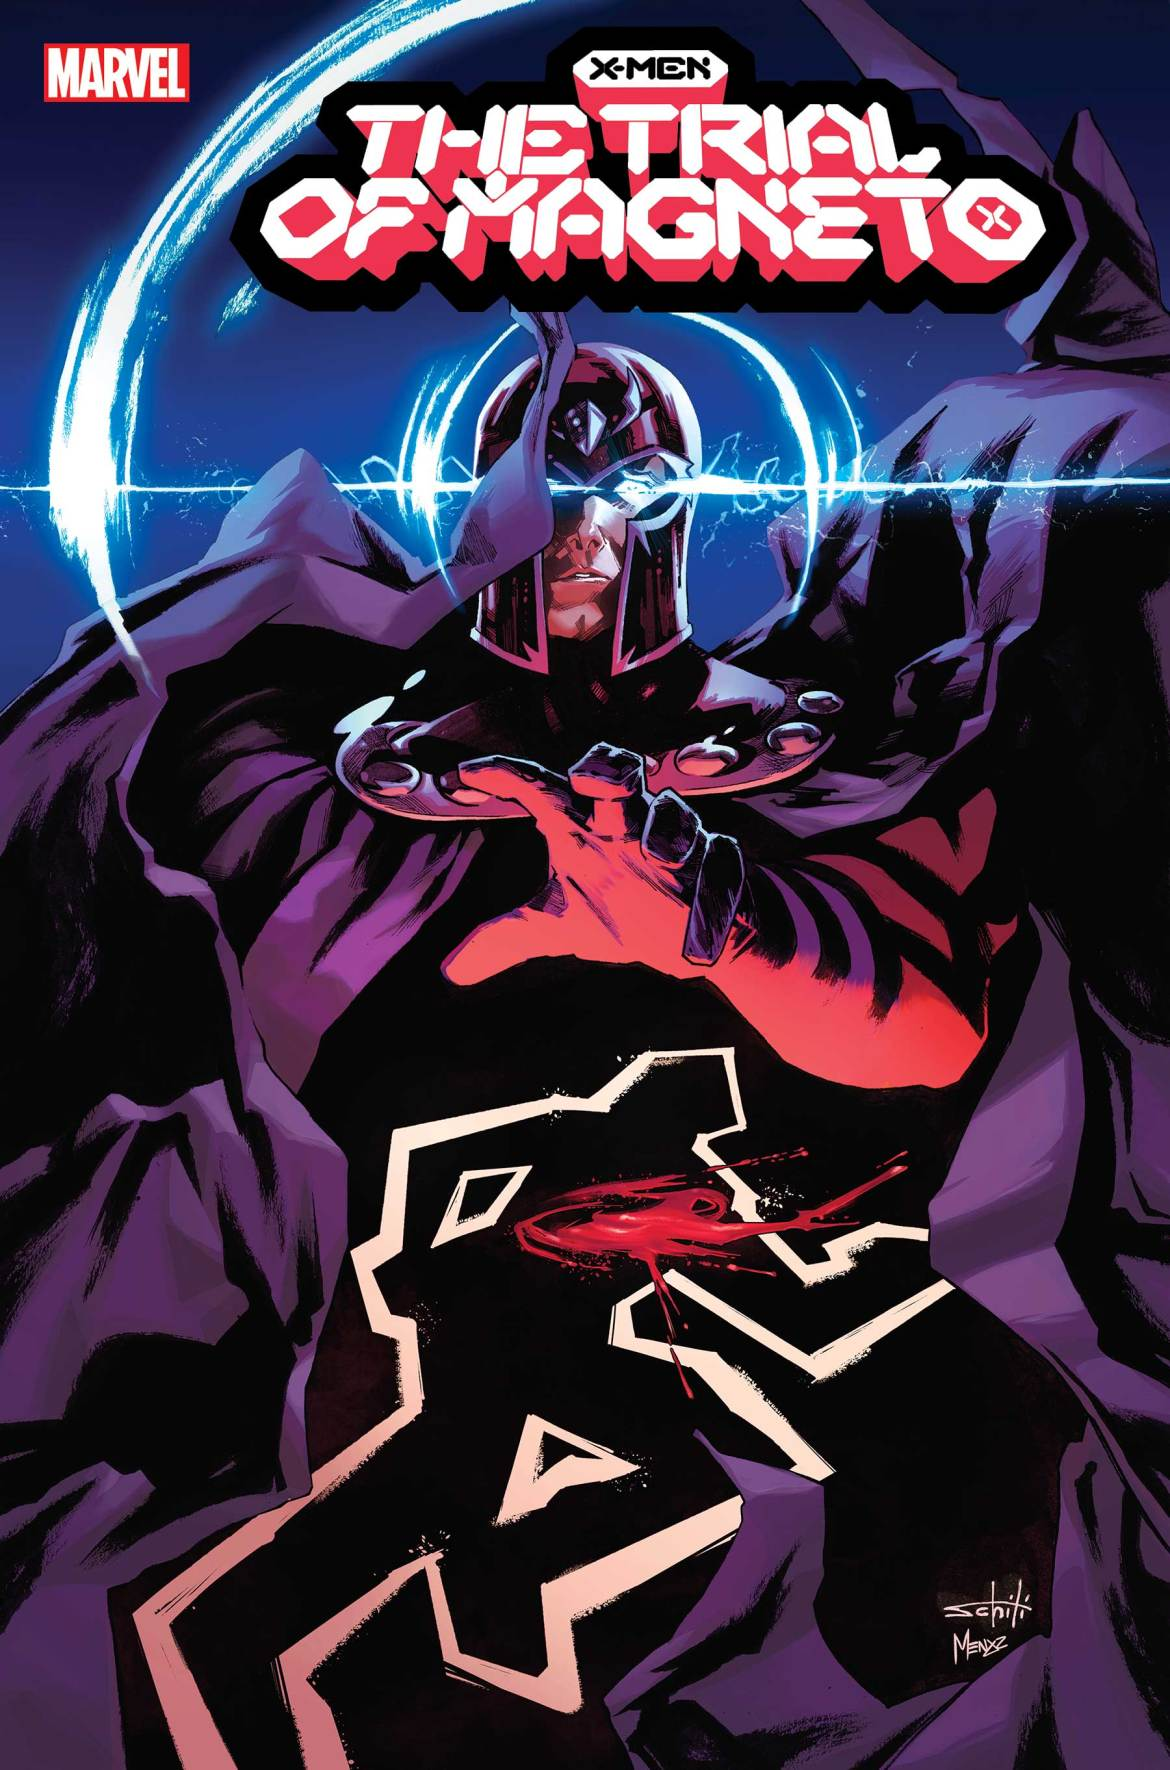 XMENTRIAL2021001_Cover Murder manifests into THE TRIAL OF MAGNETO